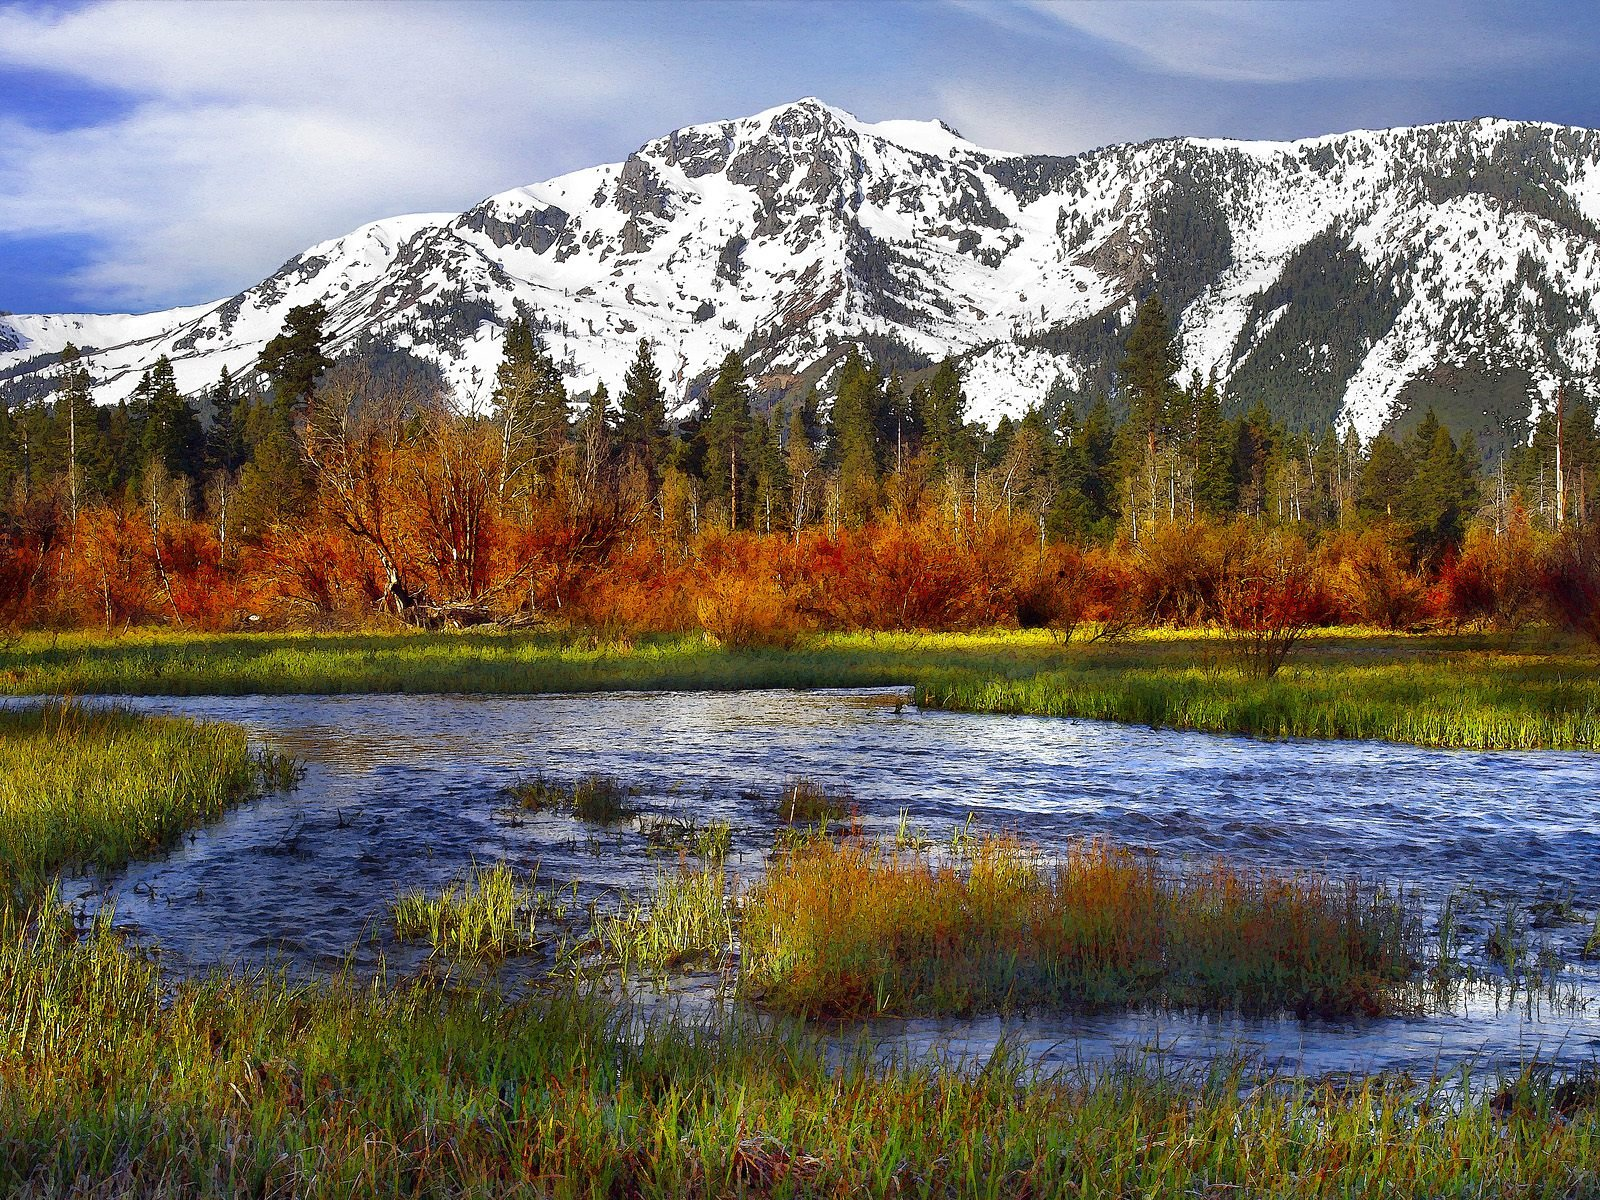 1600x1200 river and mountains desktop pc and mac wallpaper - Desktop wallpaper 1600x1200 ...